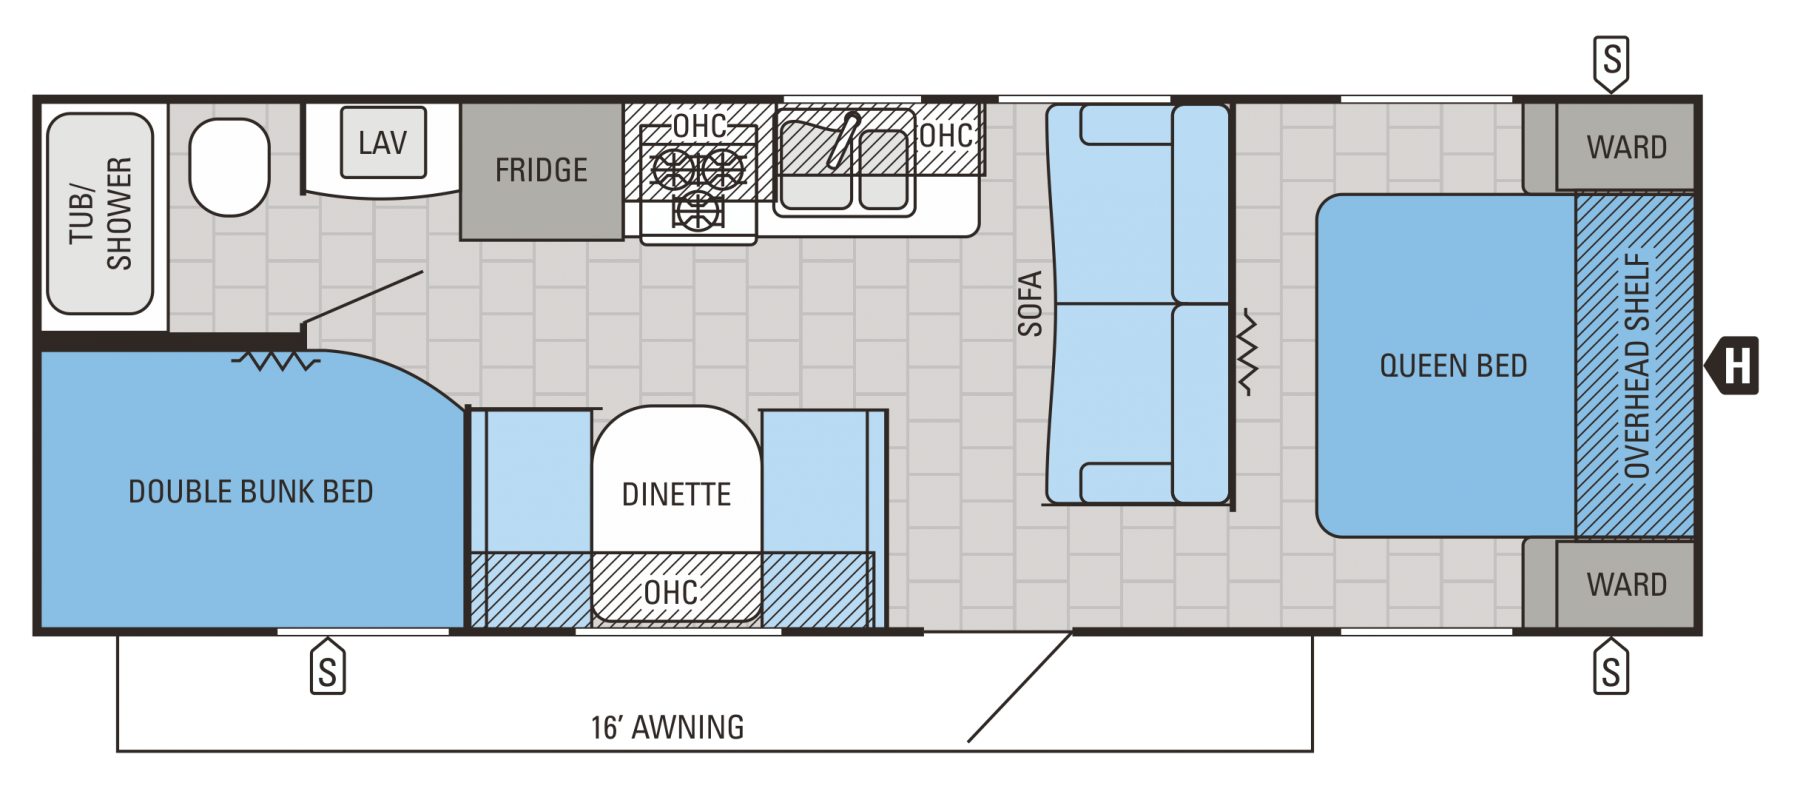 aeonhart.com 24 Lastest Jayco Pop Up Camper Floor Plans 56